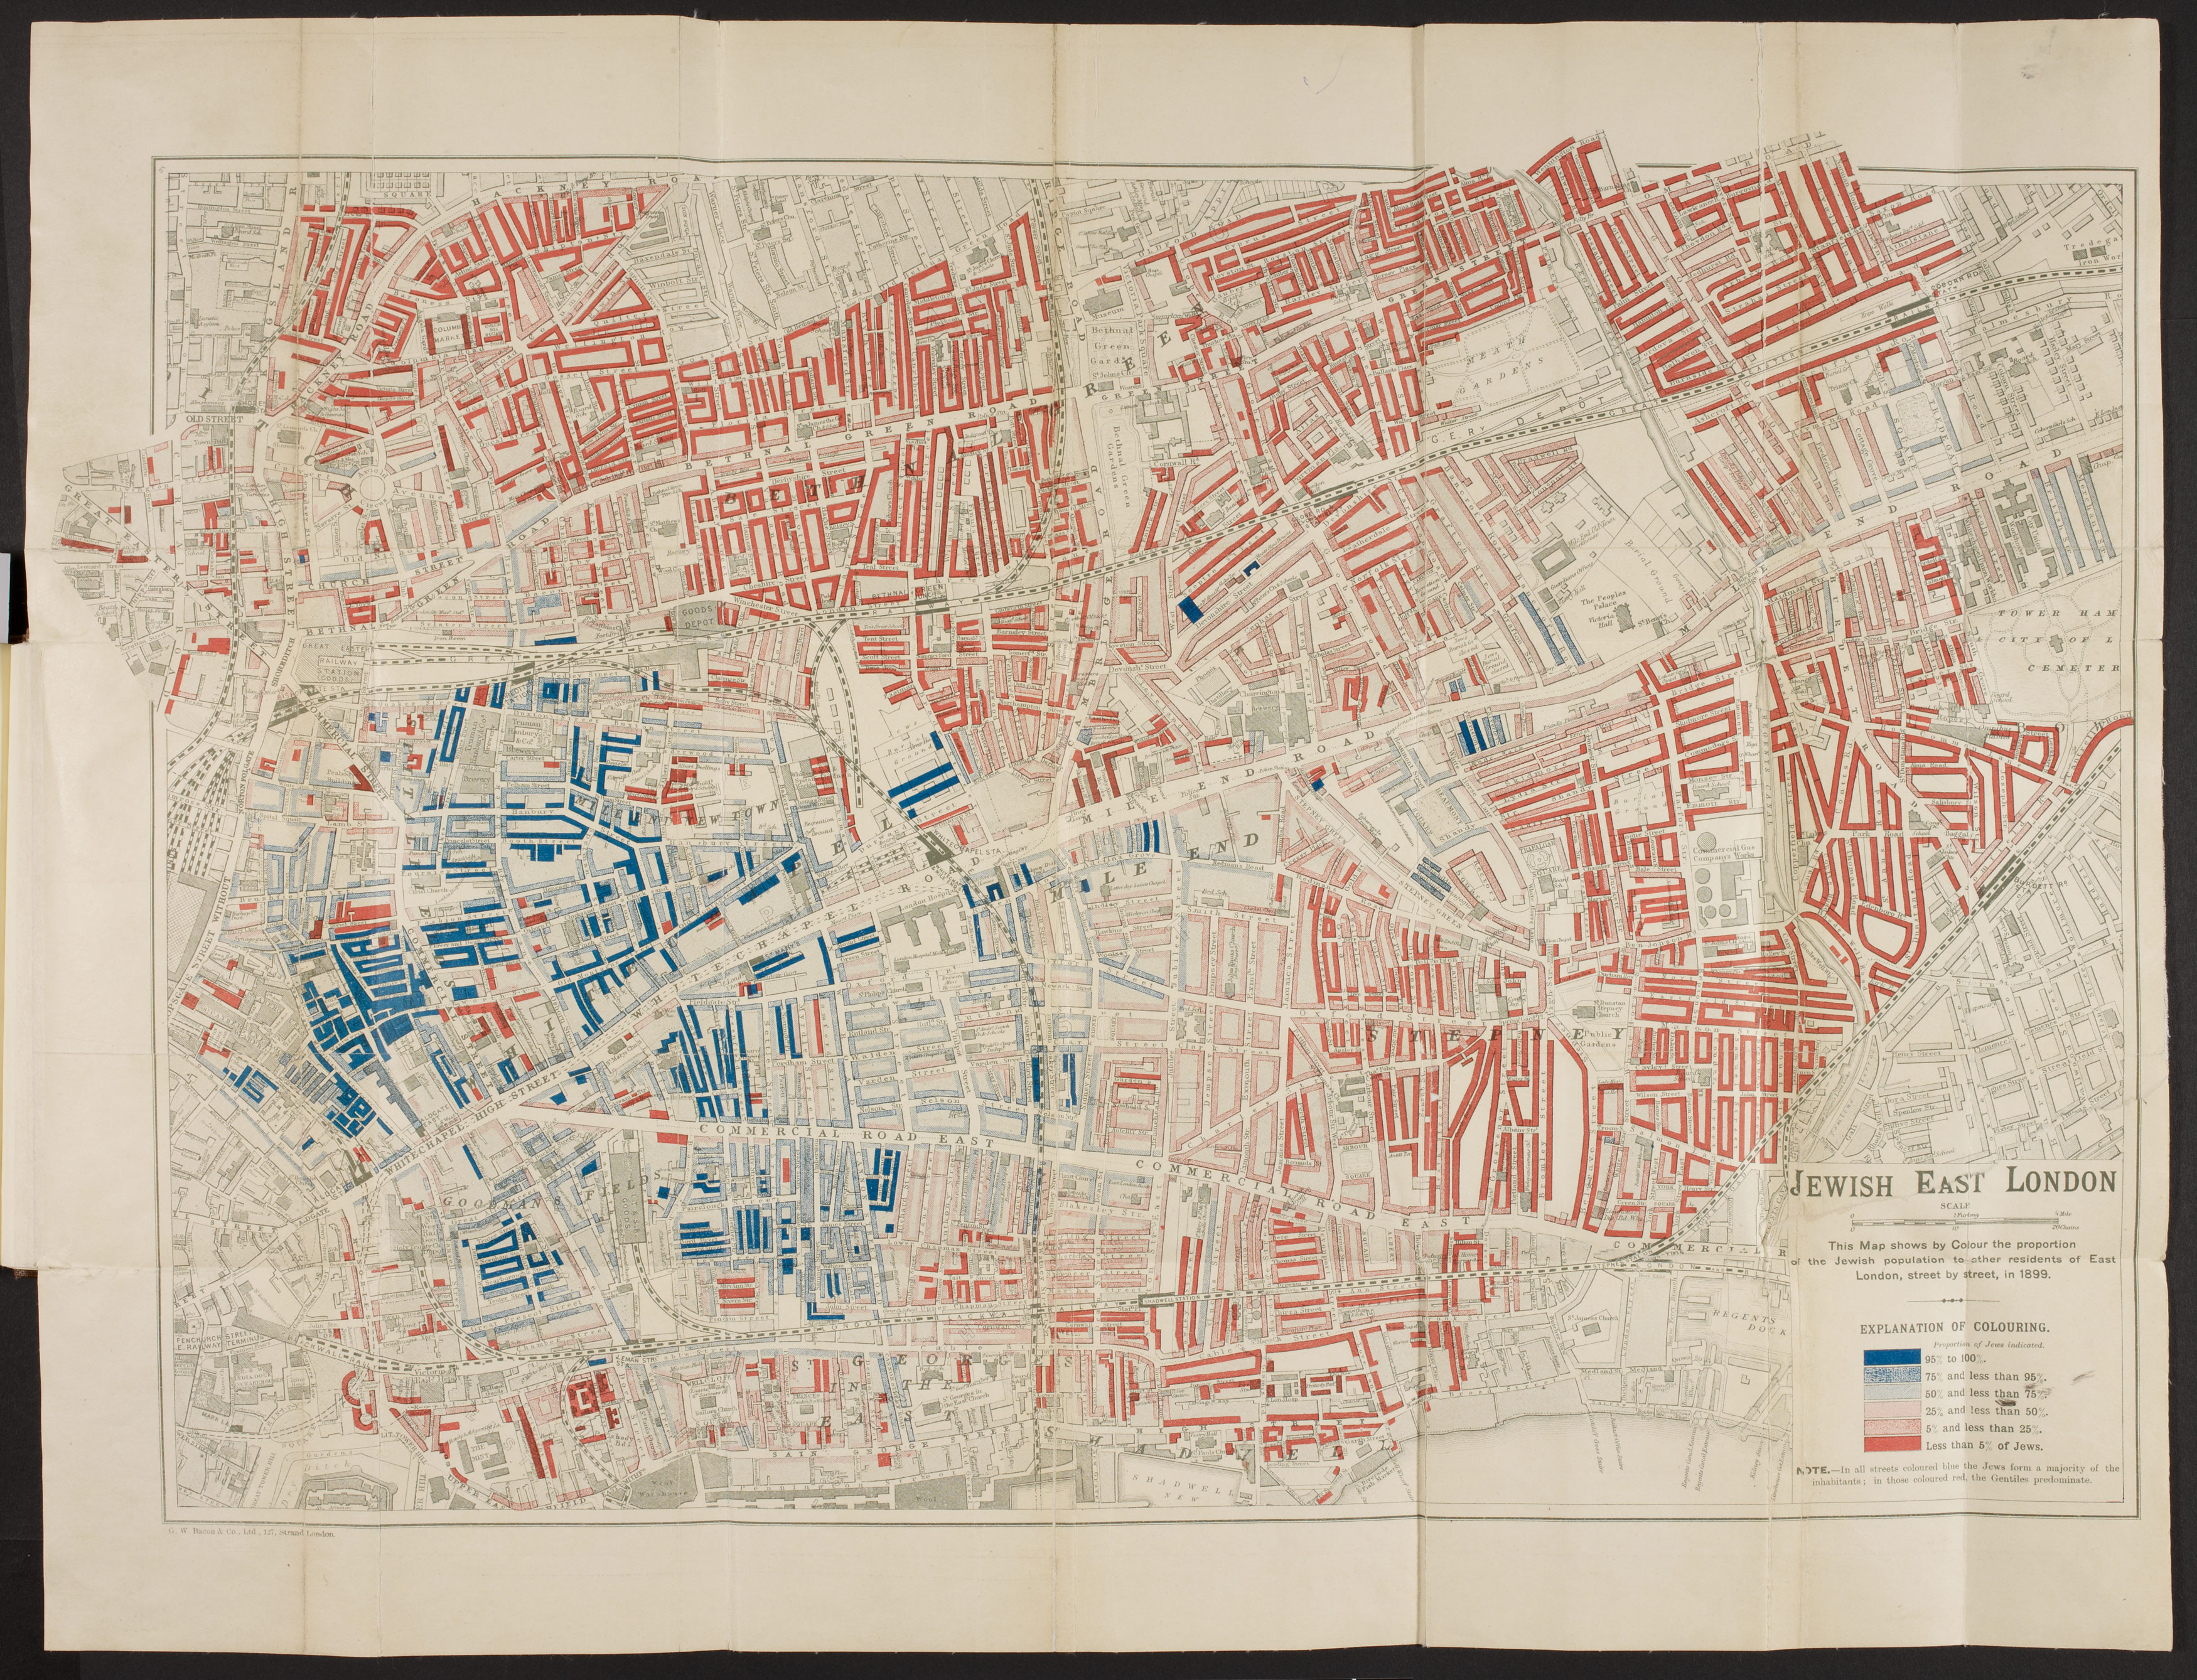 Maps - The British Library